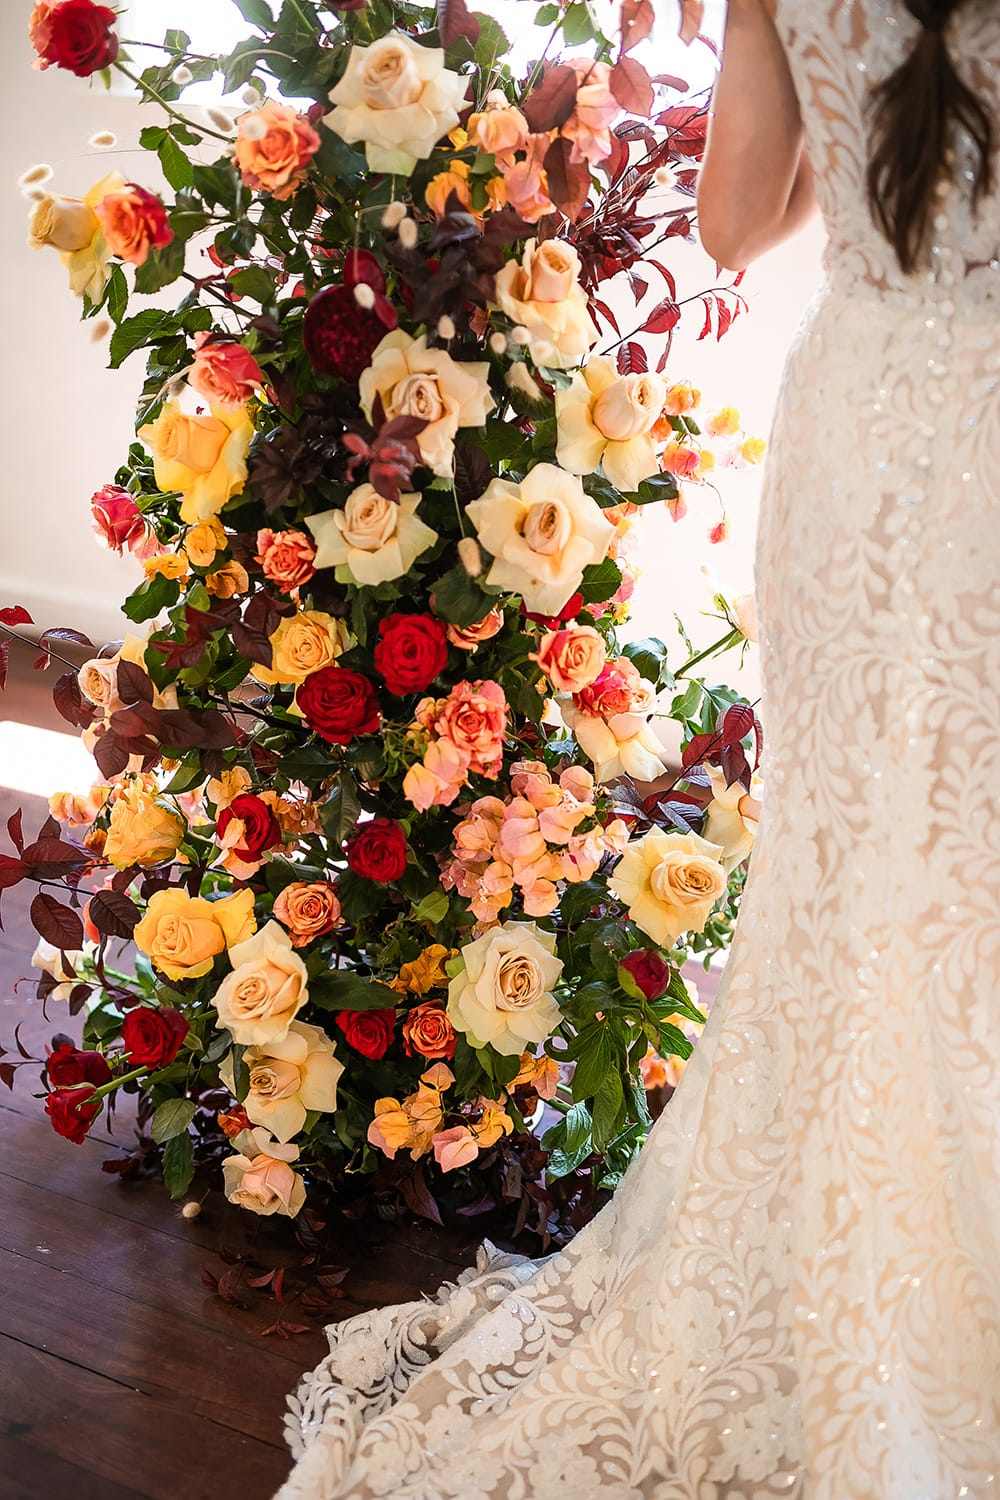 Modern Luxe Wedding Inspiration in Autumn Colours | Photography: Jason Soon Photography